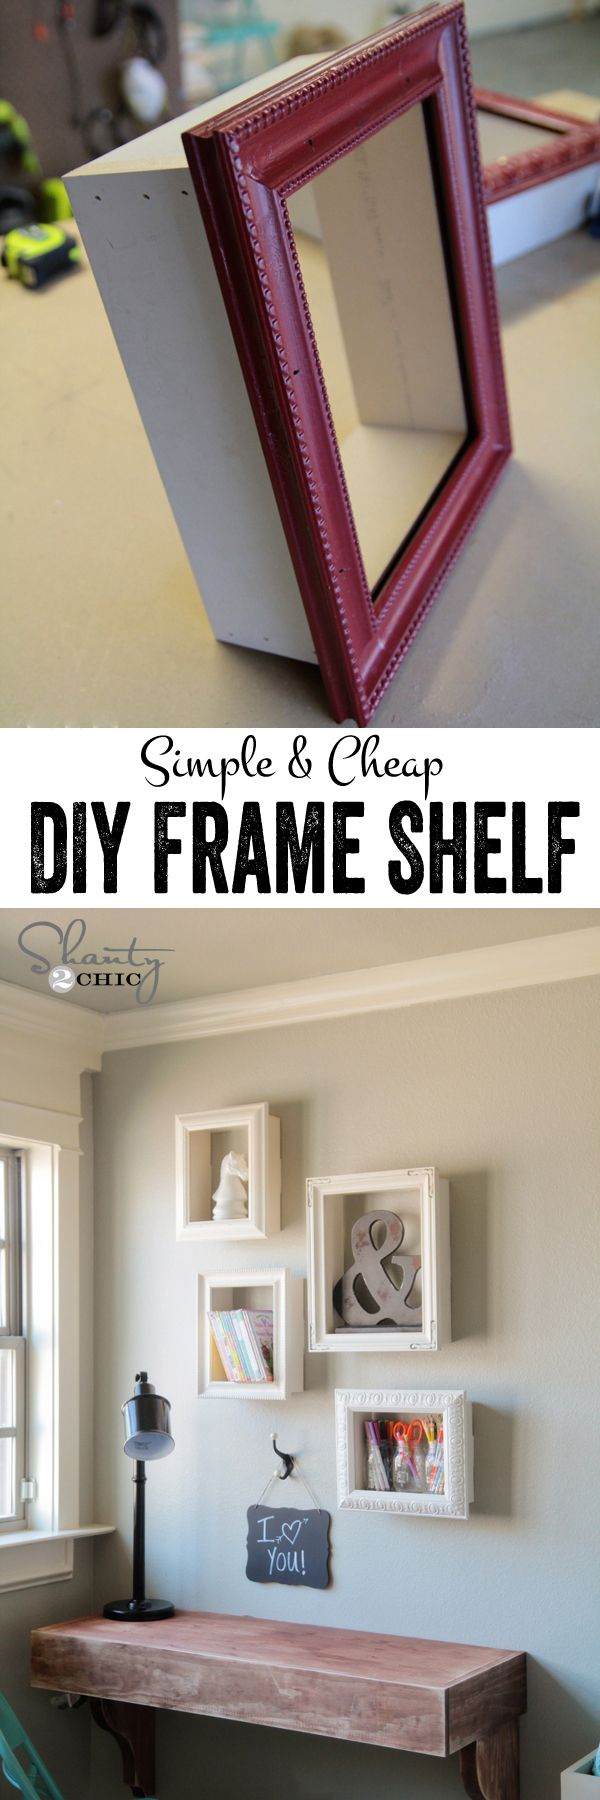 Best 25+ Diy wall decor ideas on Pinterest | Diy wall art, Diy ...